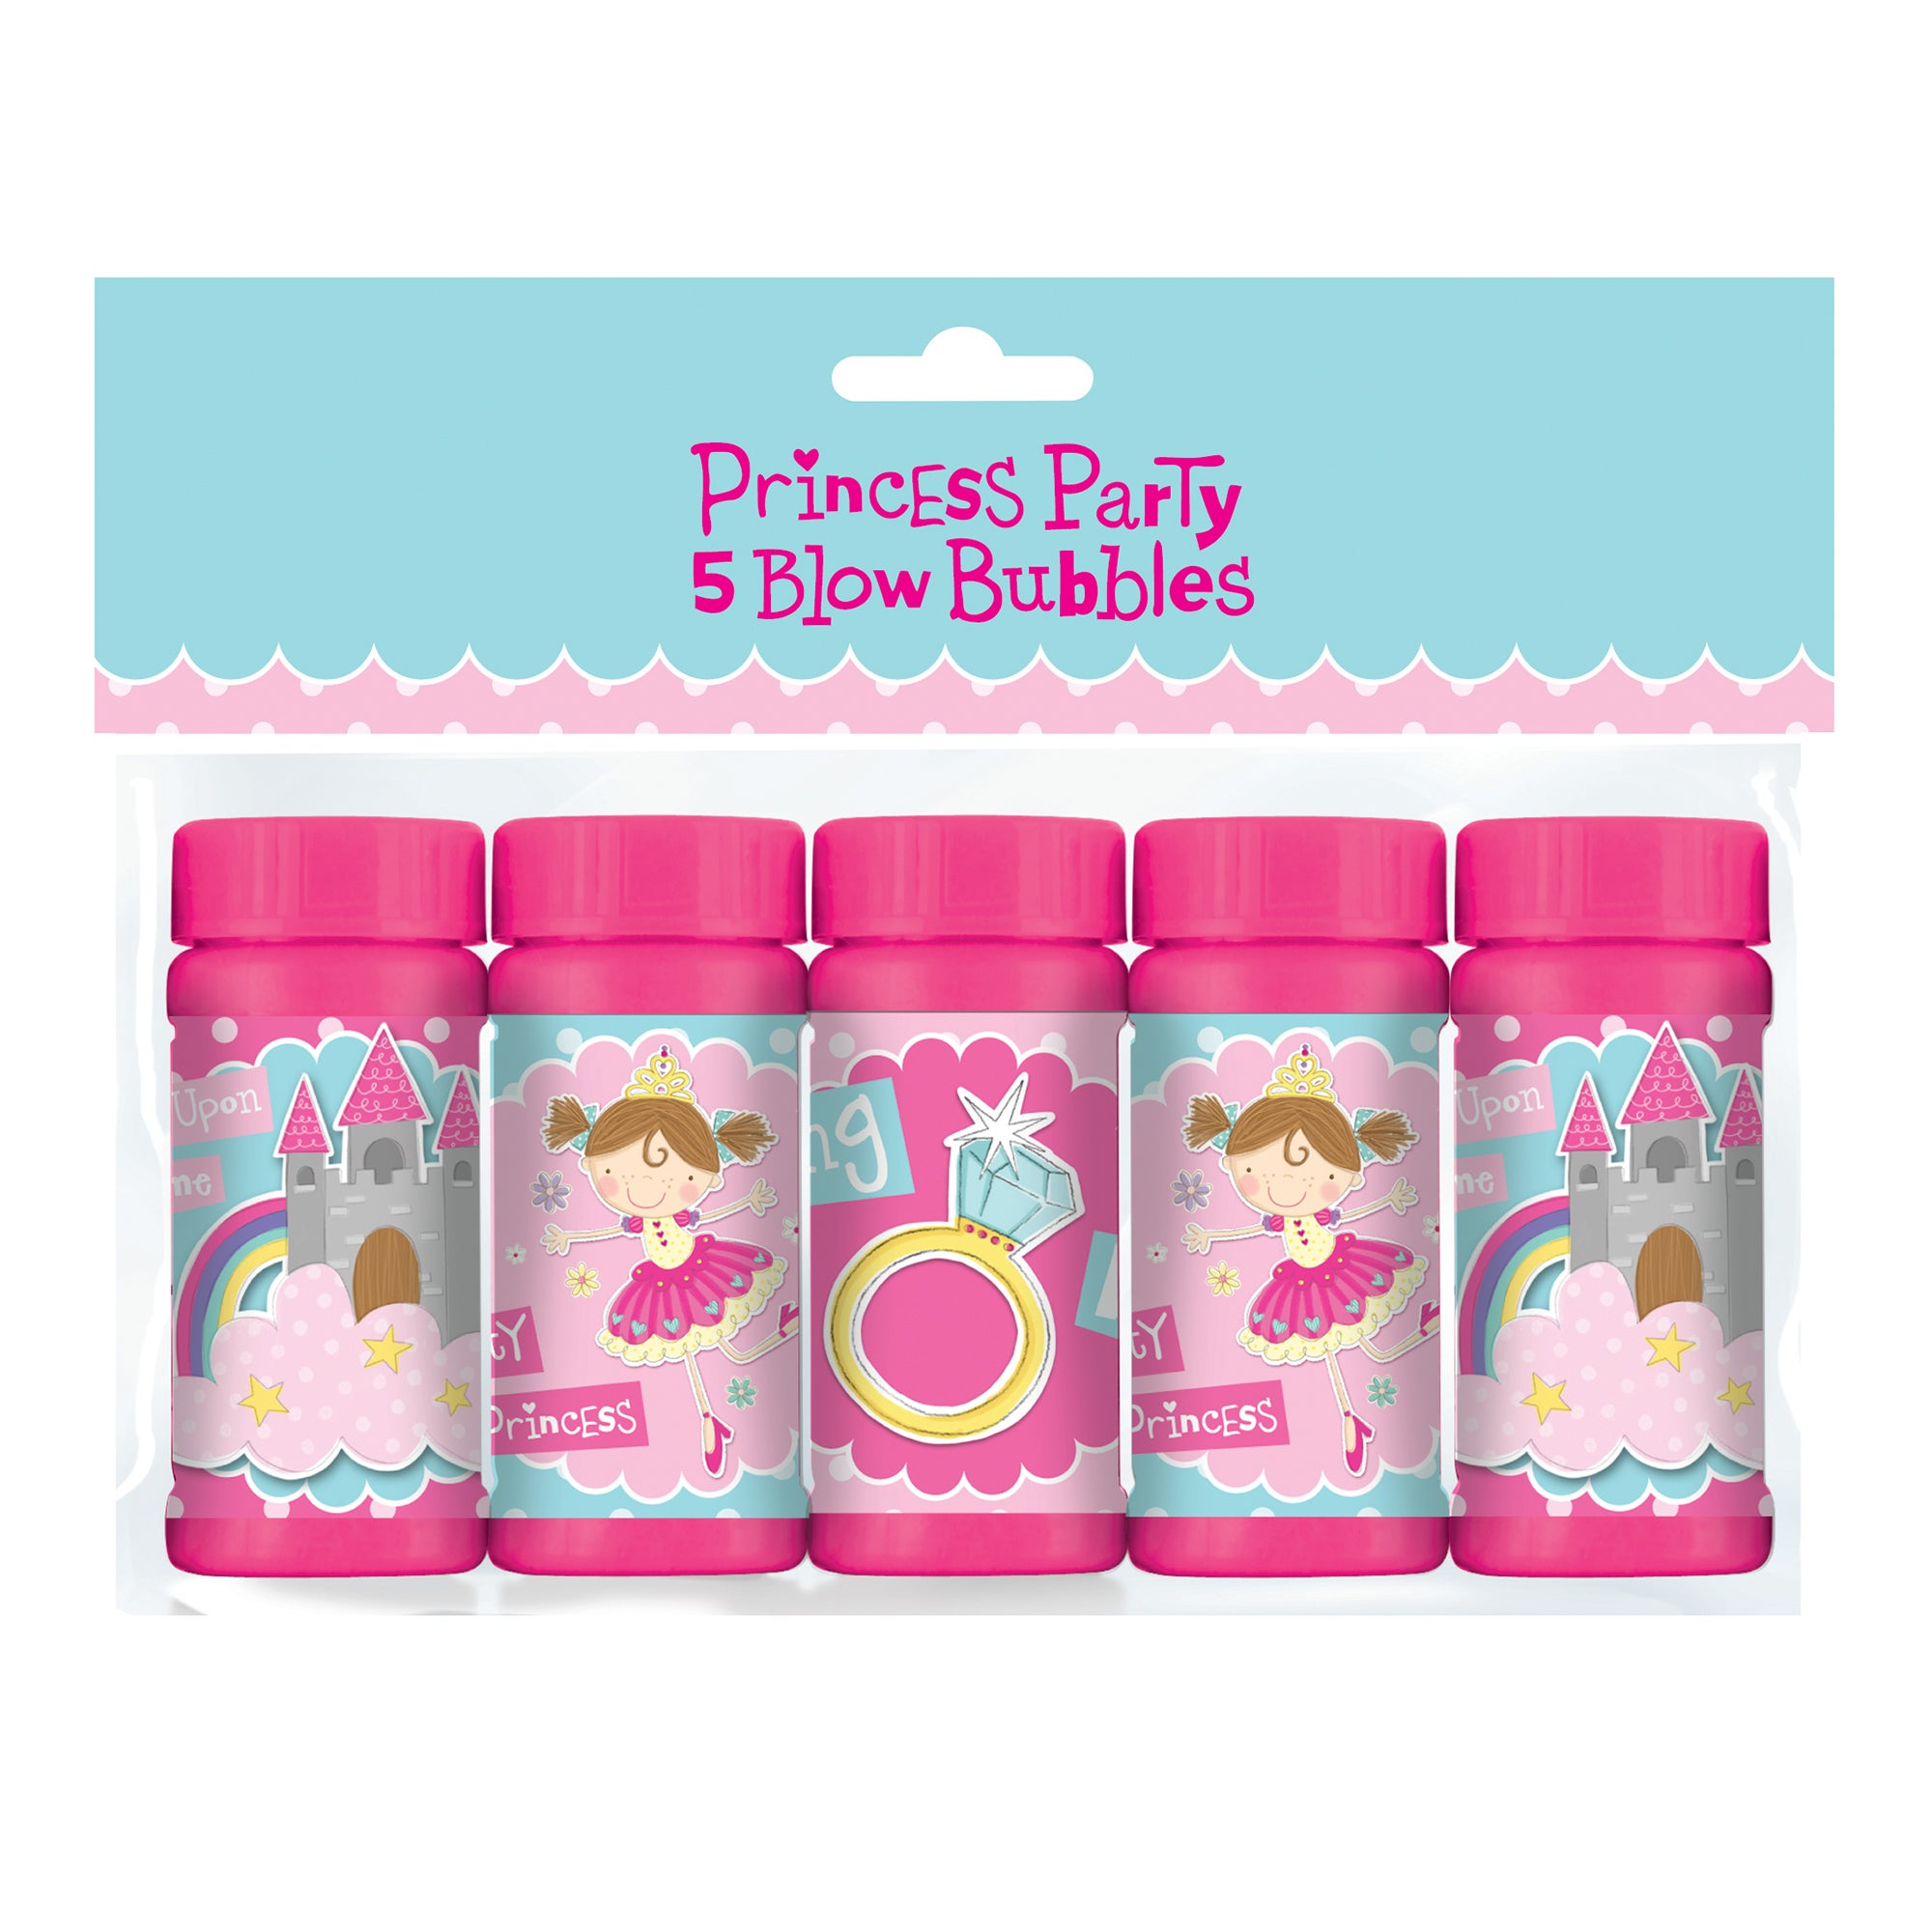 Princess Party Pack of 5 Bottles of Blow Bubbles